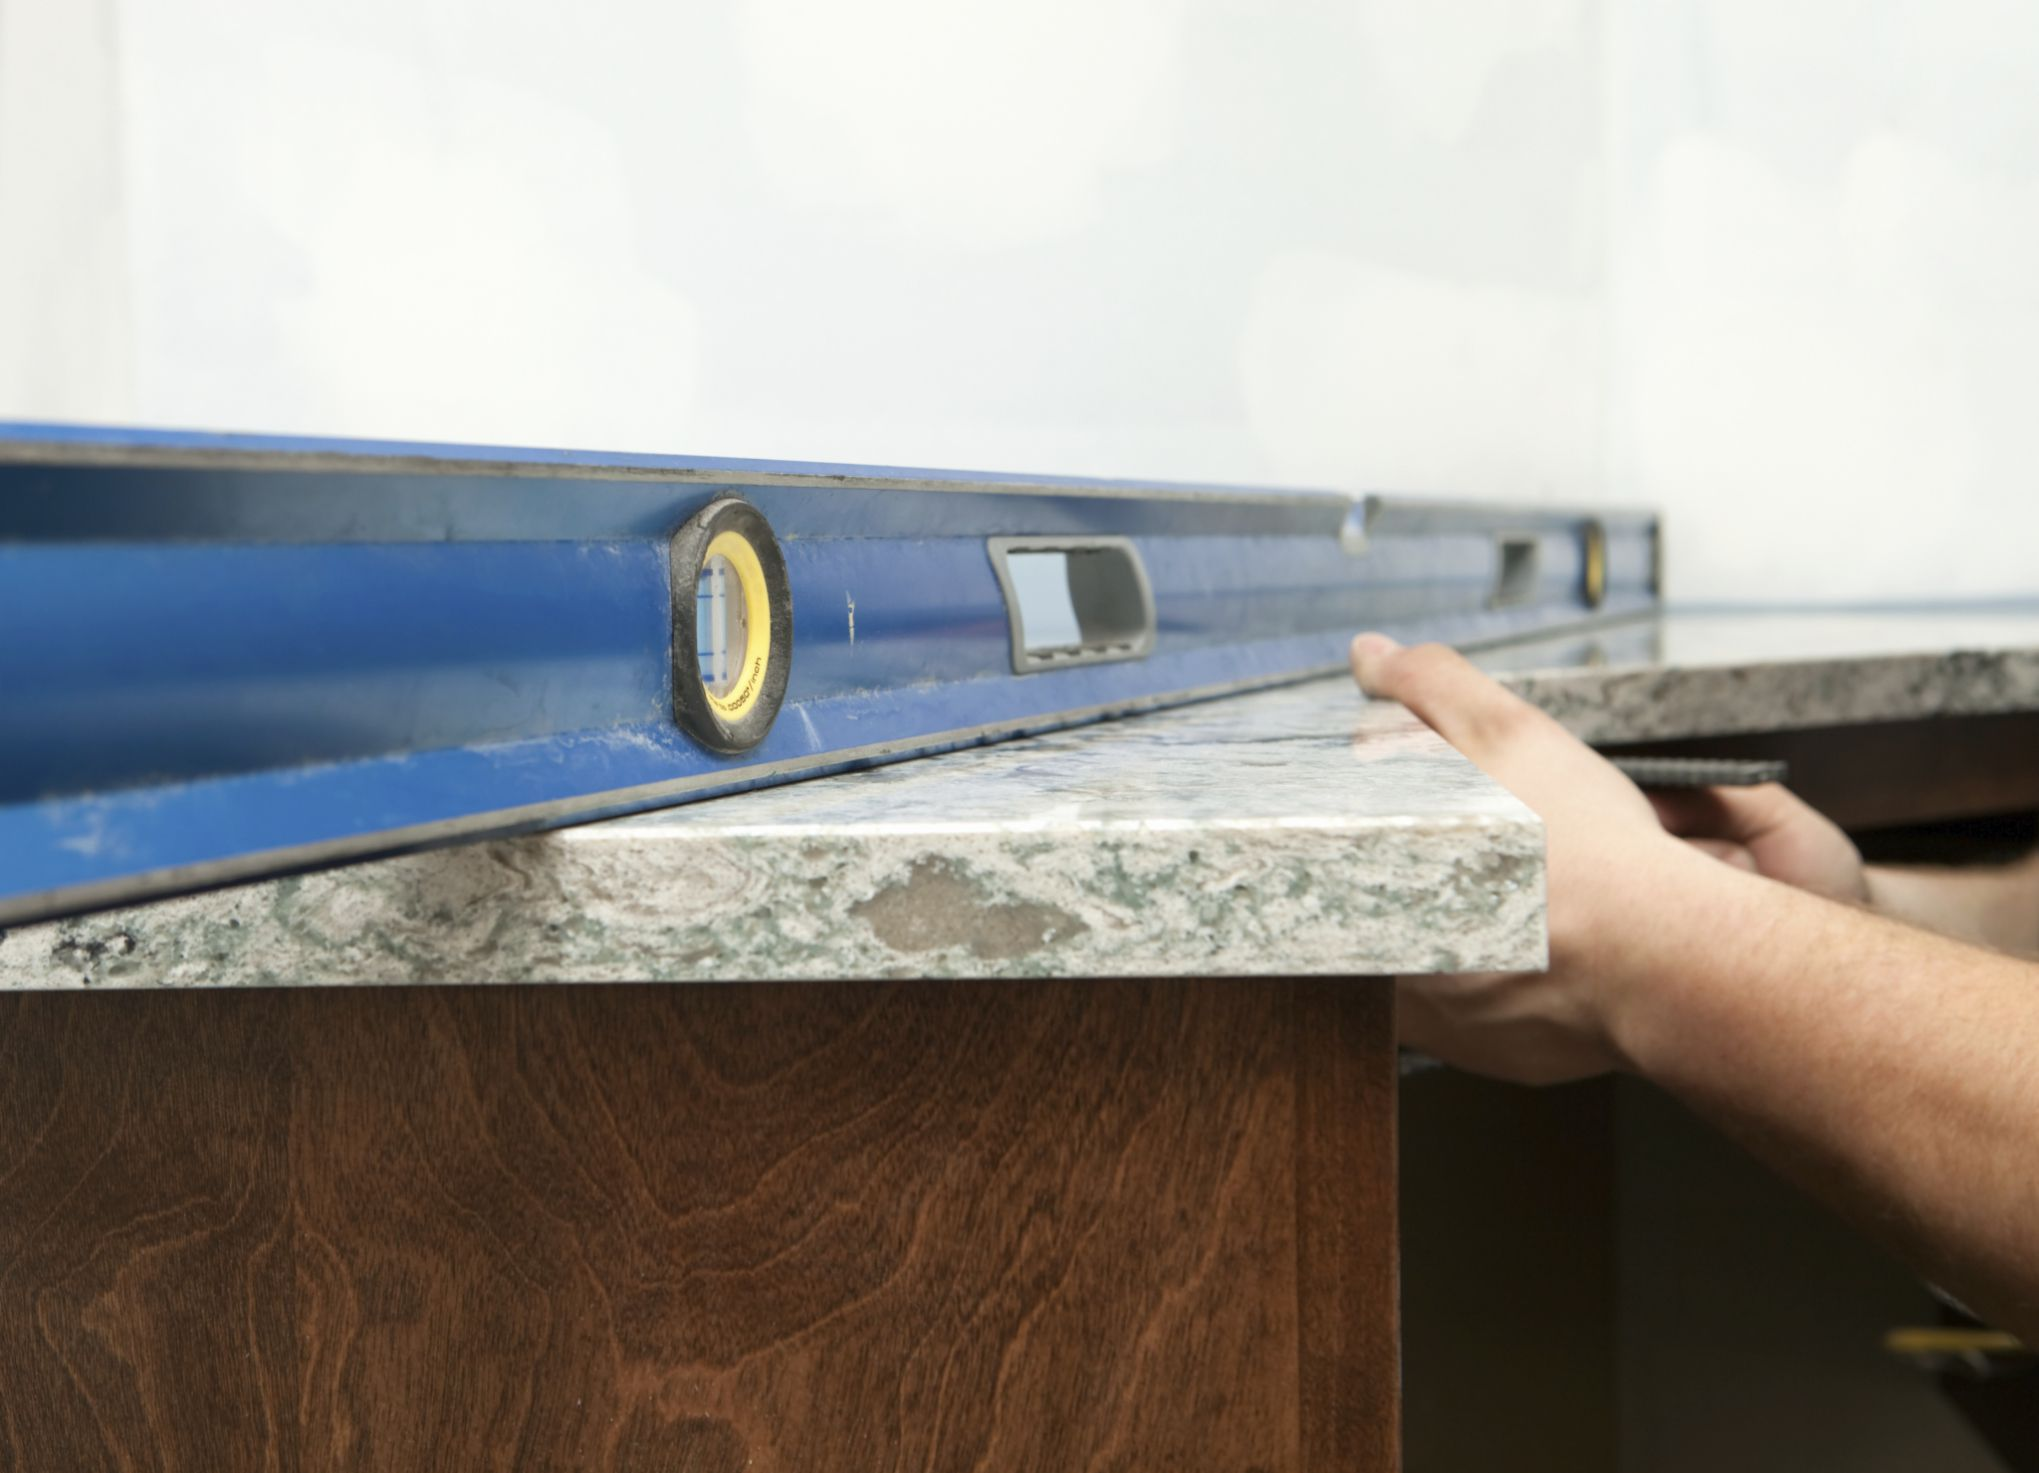 Installing Kitchen Countertops Requires An Accurate Template